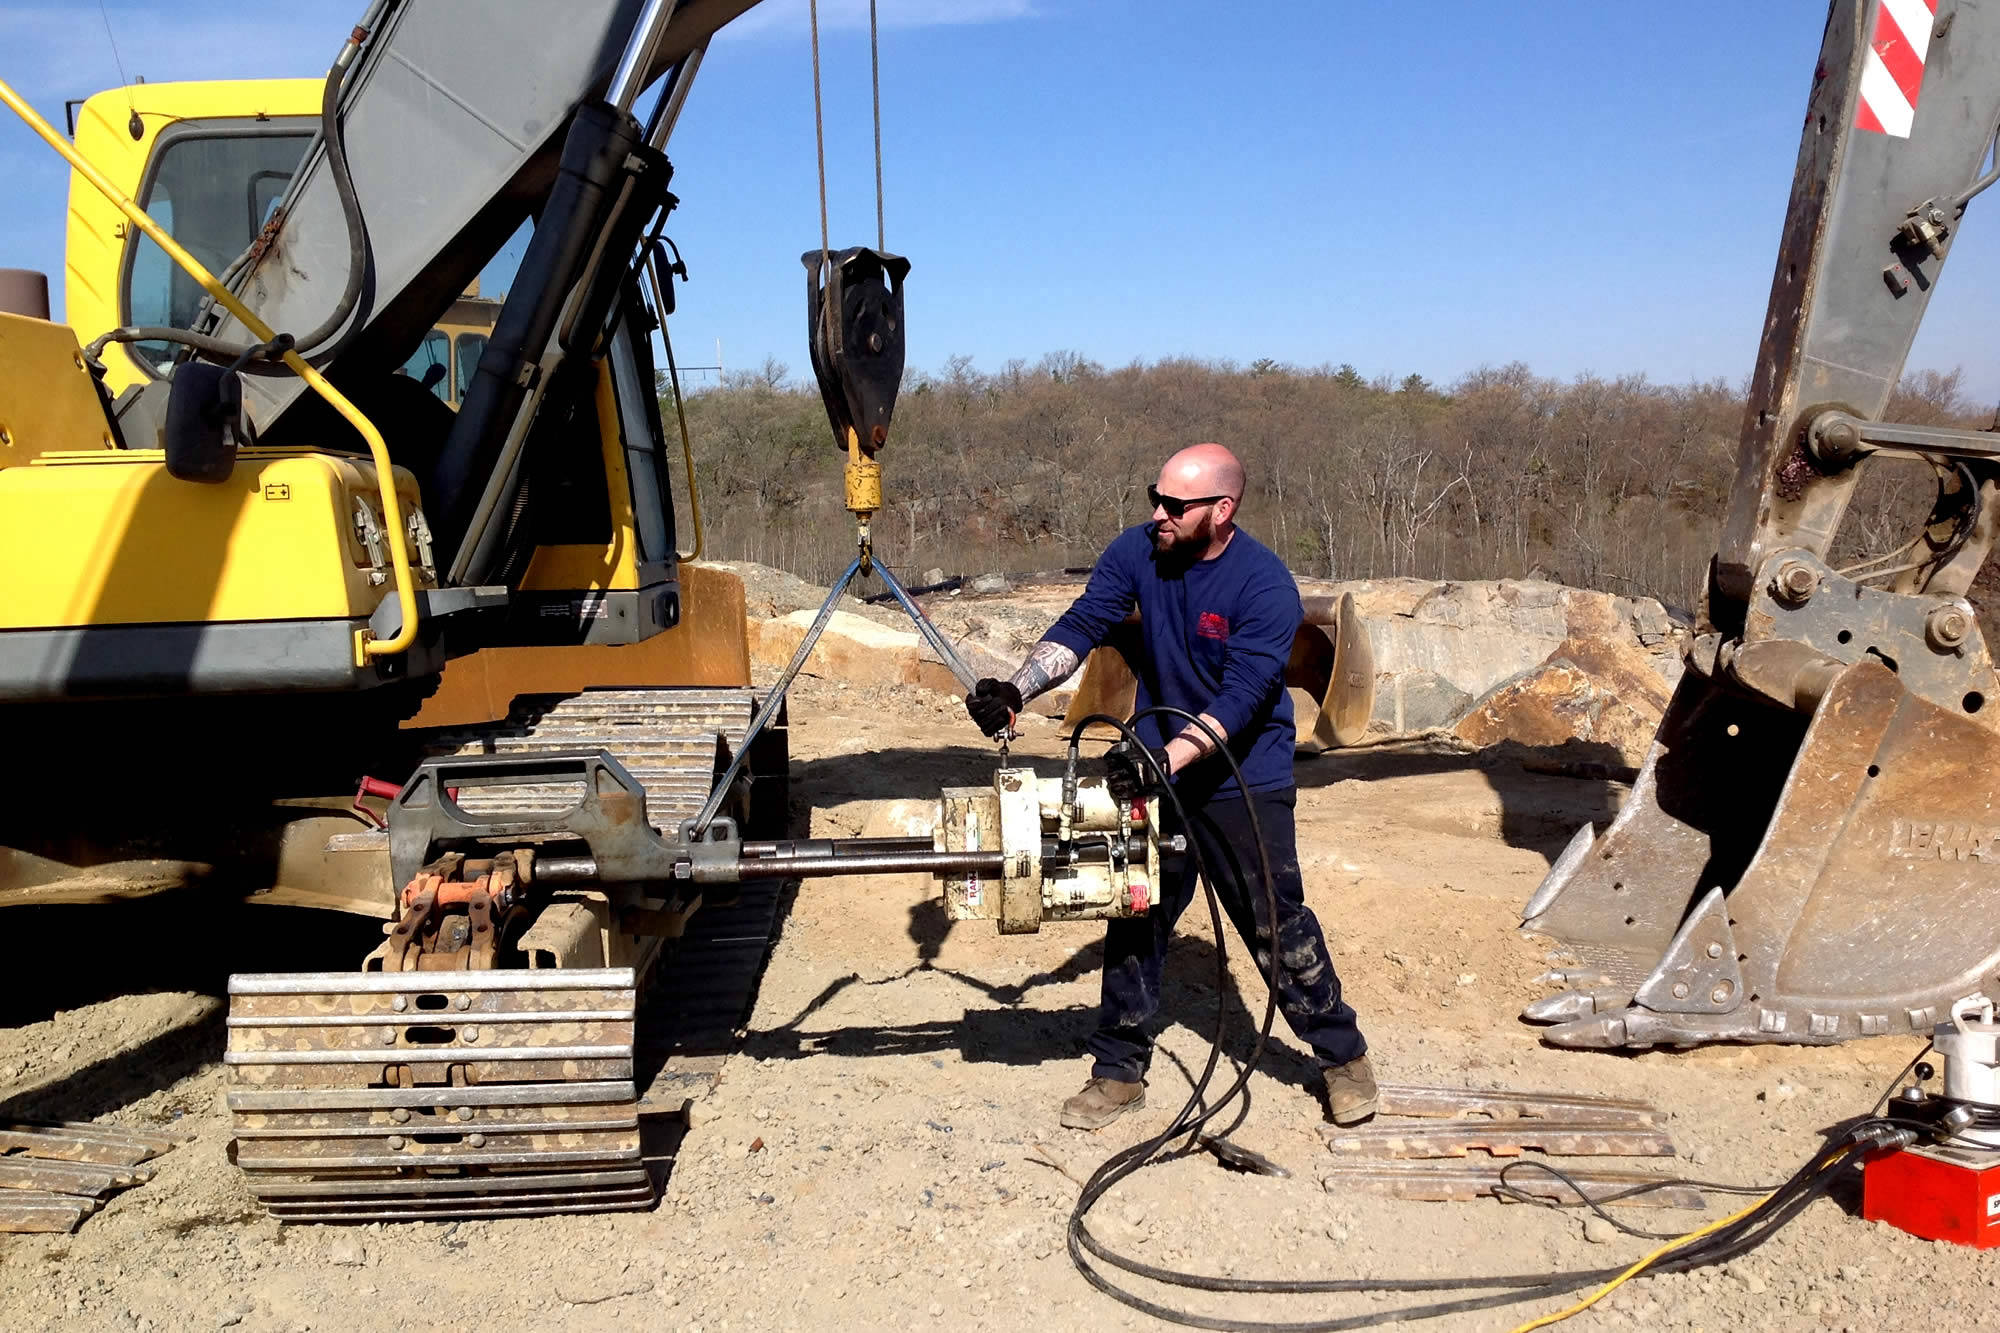 D&D Equipment Repair - Heavy equipment and in-house hydraulic cylinder rebuilds and repairs in Woburn, MA  Call us - 781.537.6949